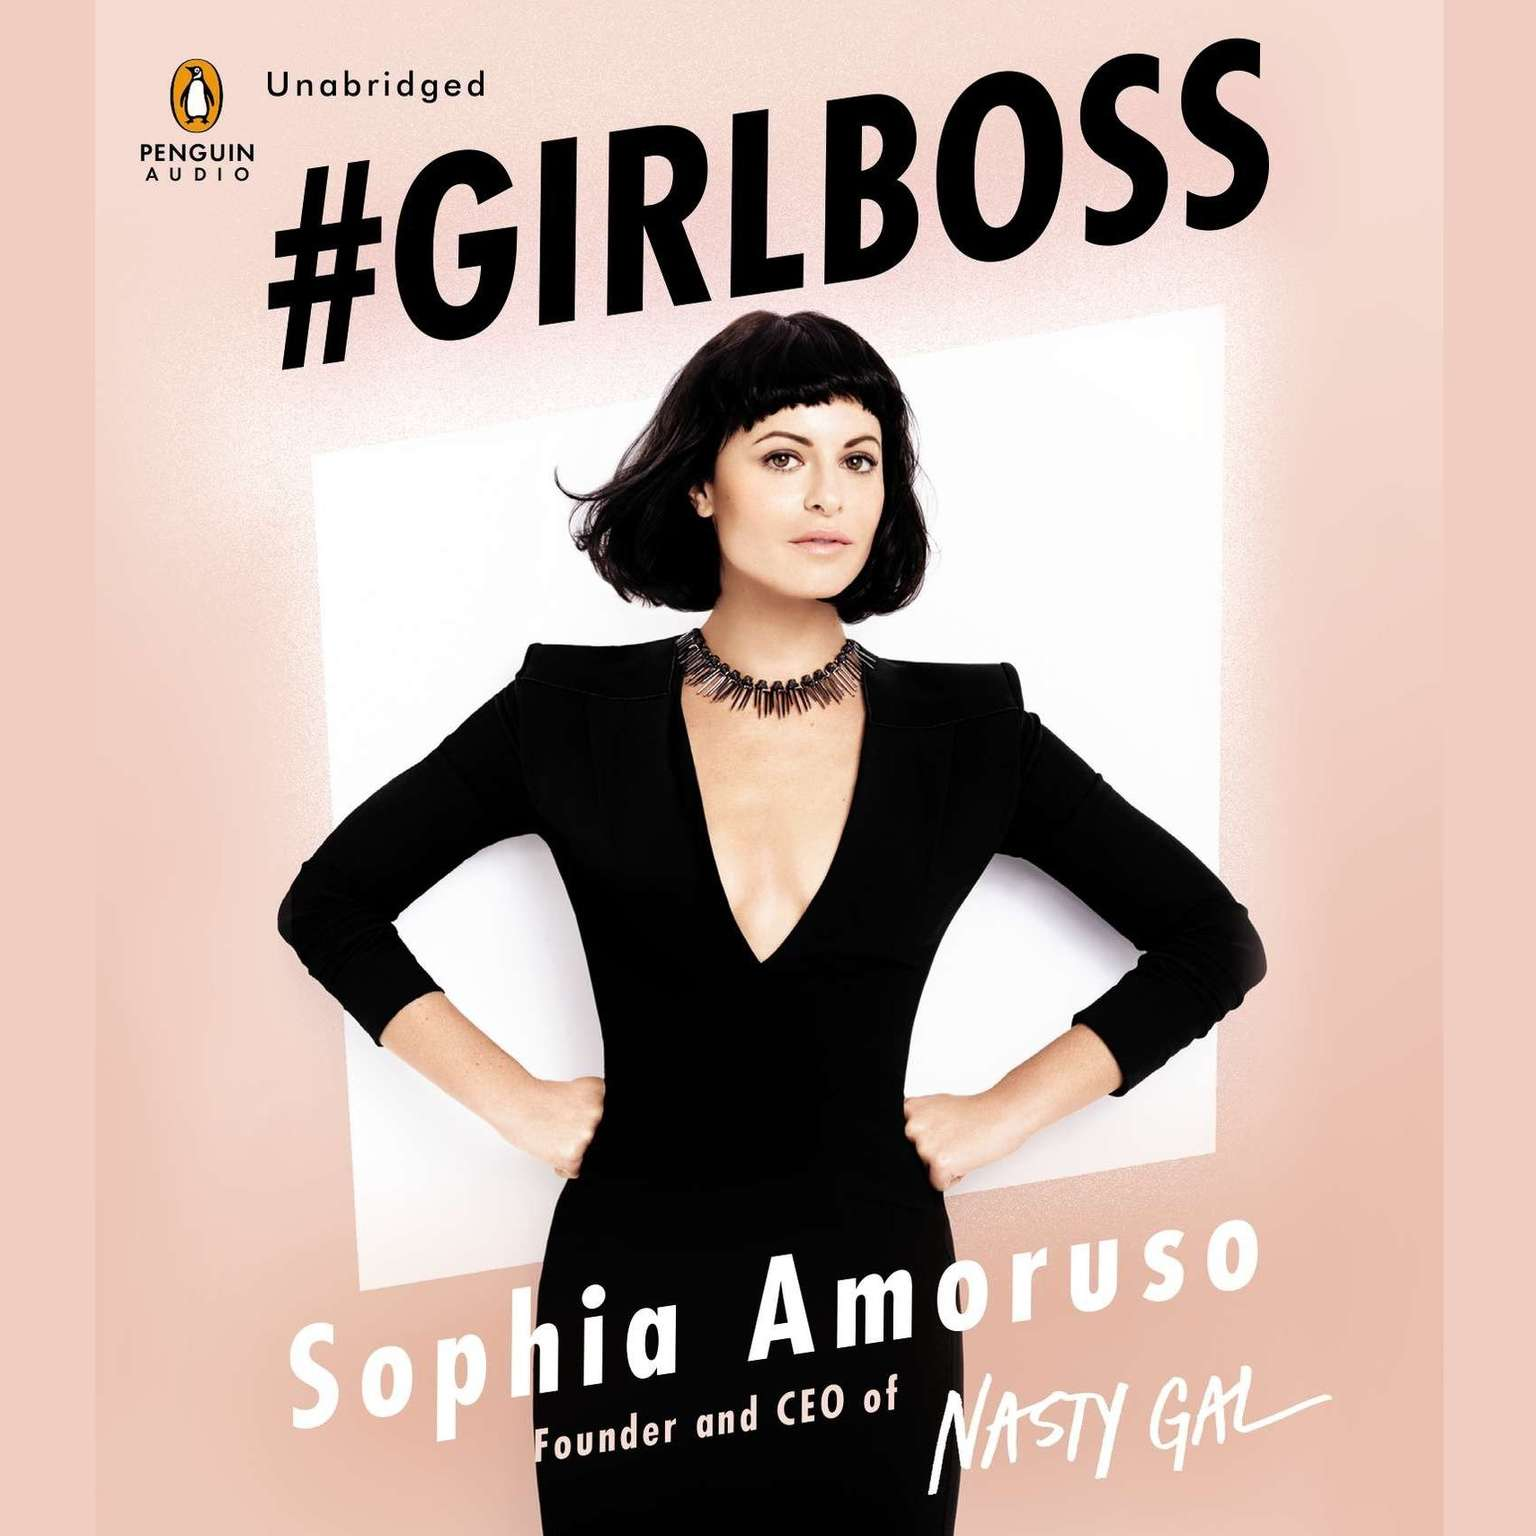 Printable #GIRLBOSS: How to Write Your Own Rules While Turning Heads and Turning Profits Audiobook Cover Art